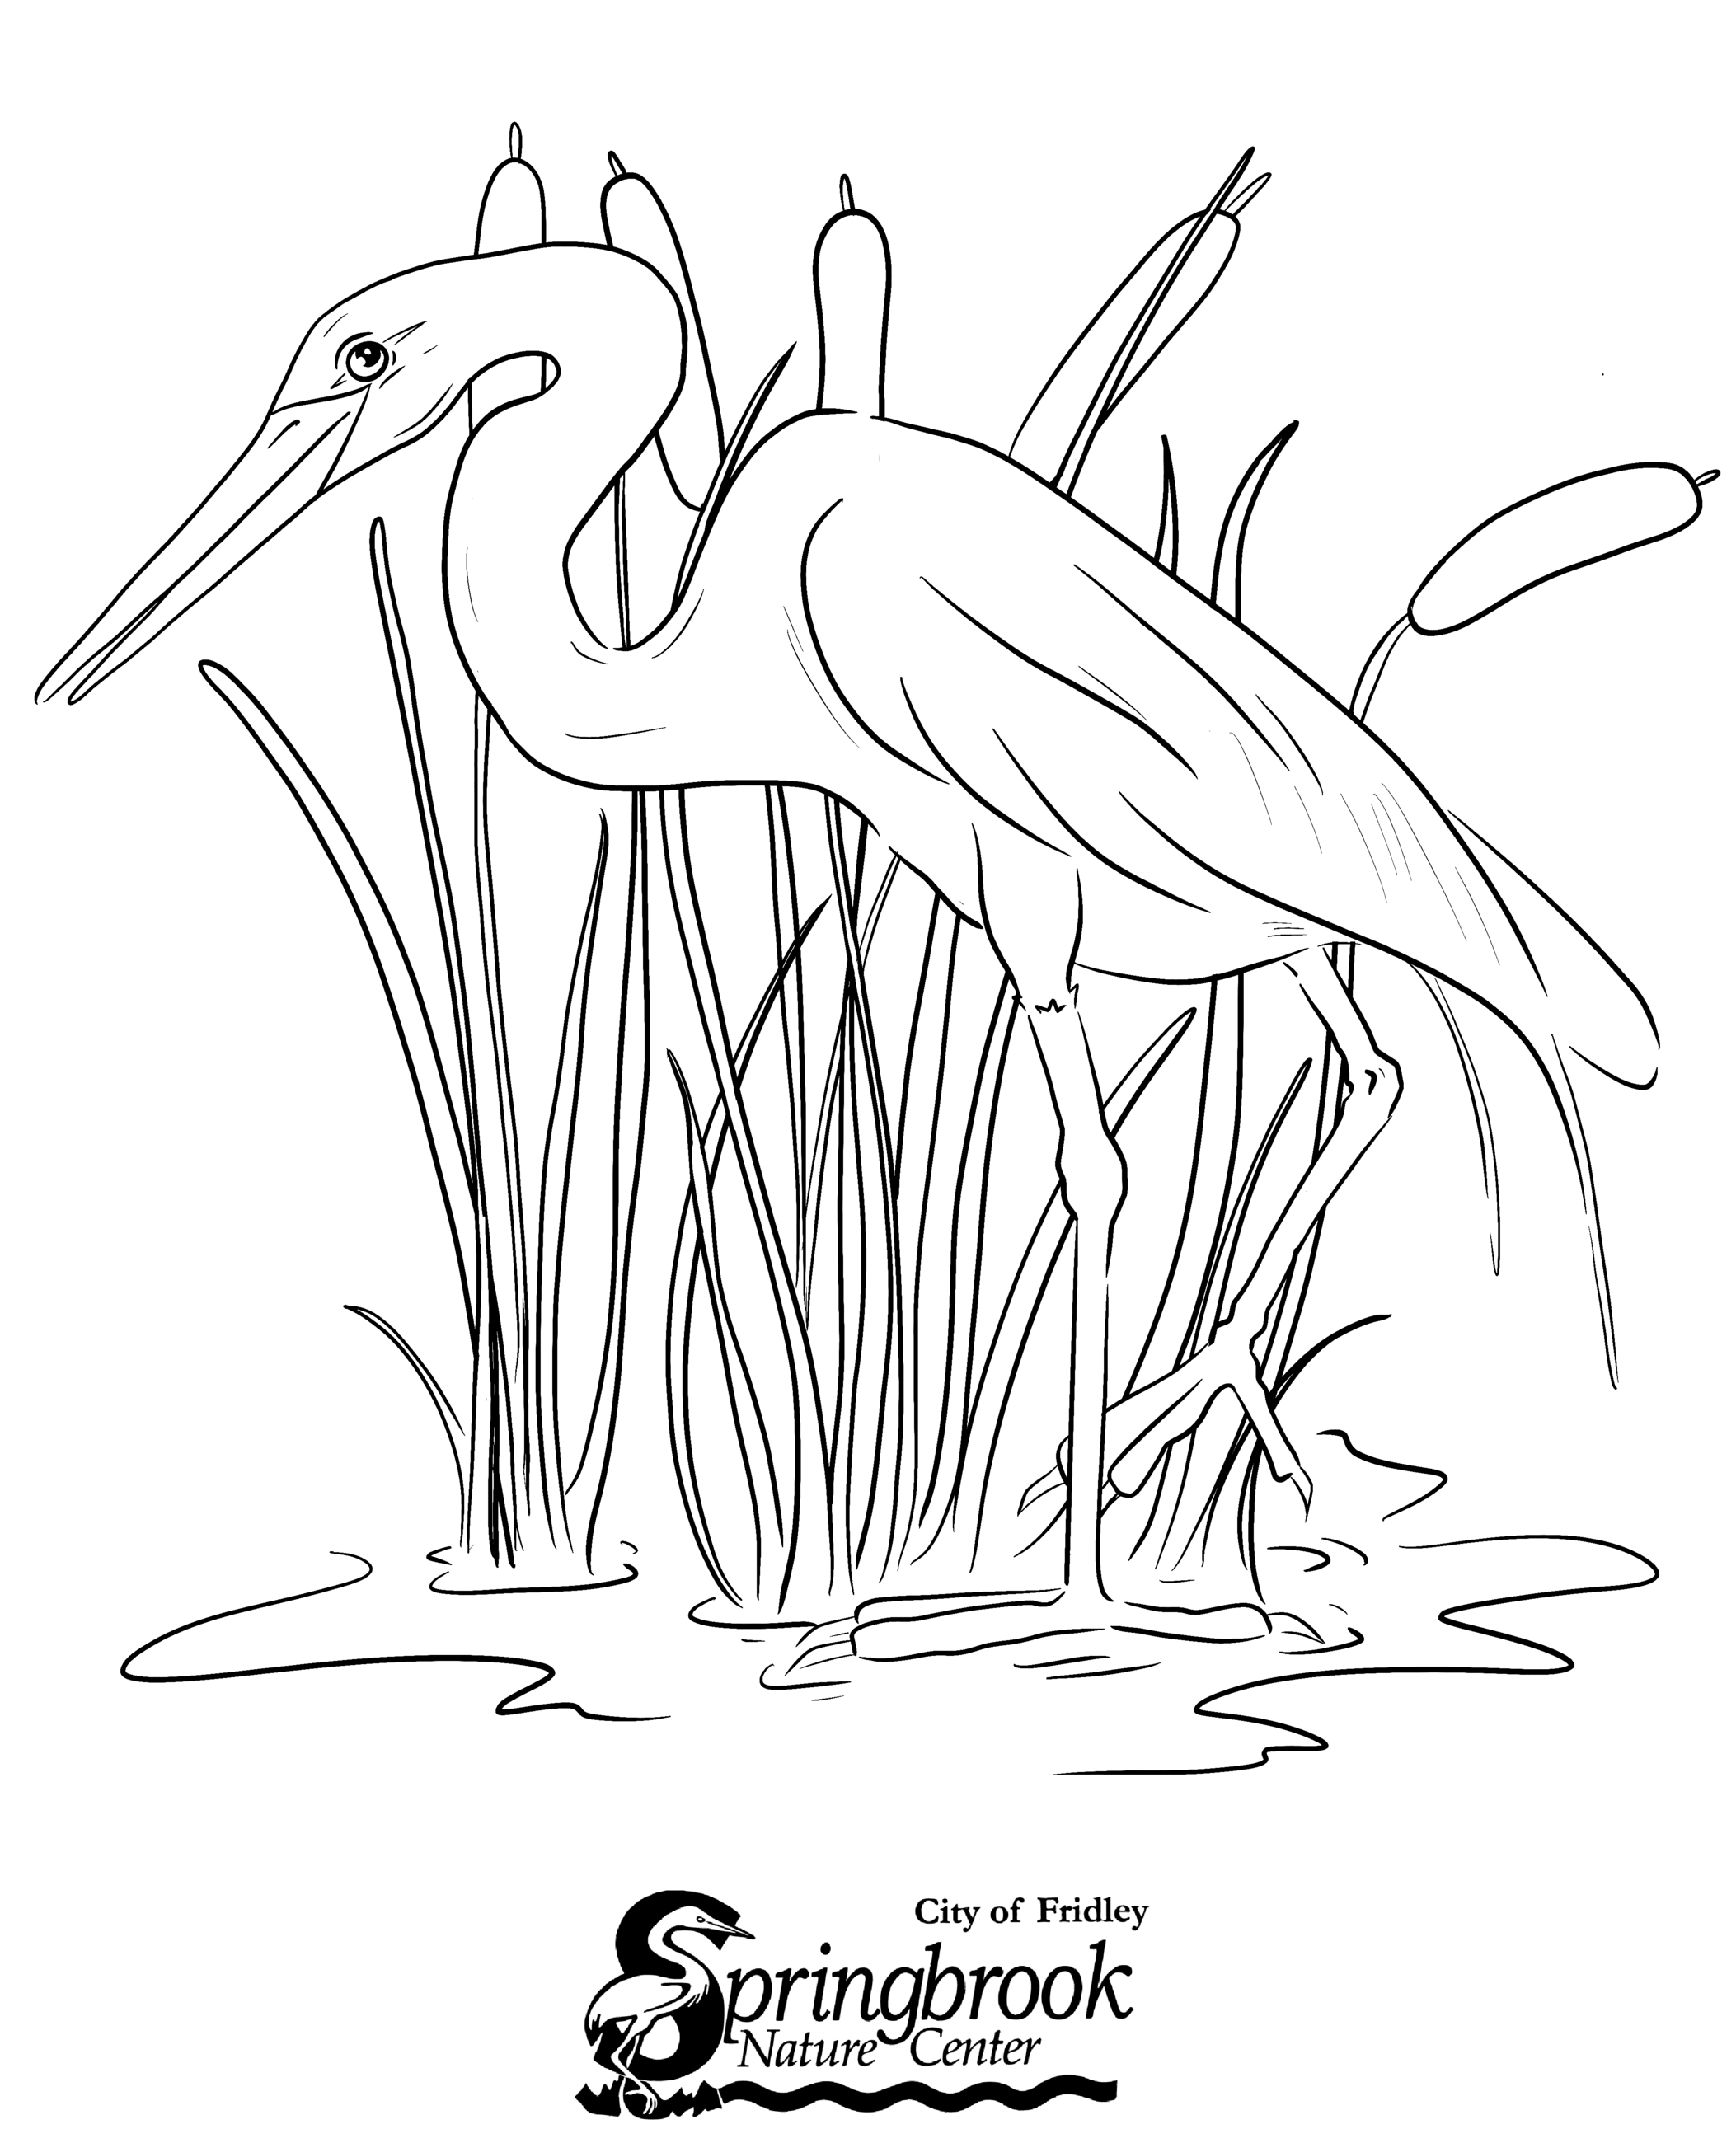 Egret Coloring Page Opens in new window